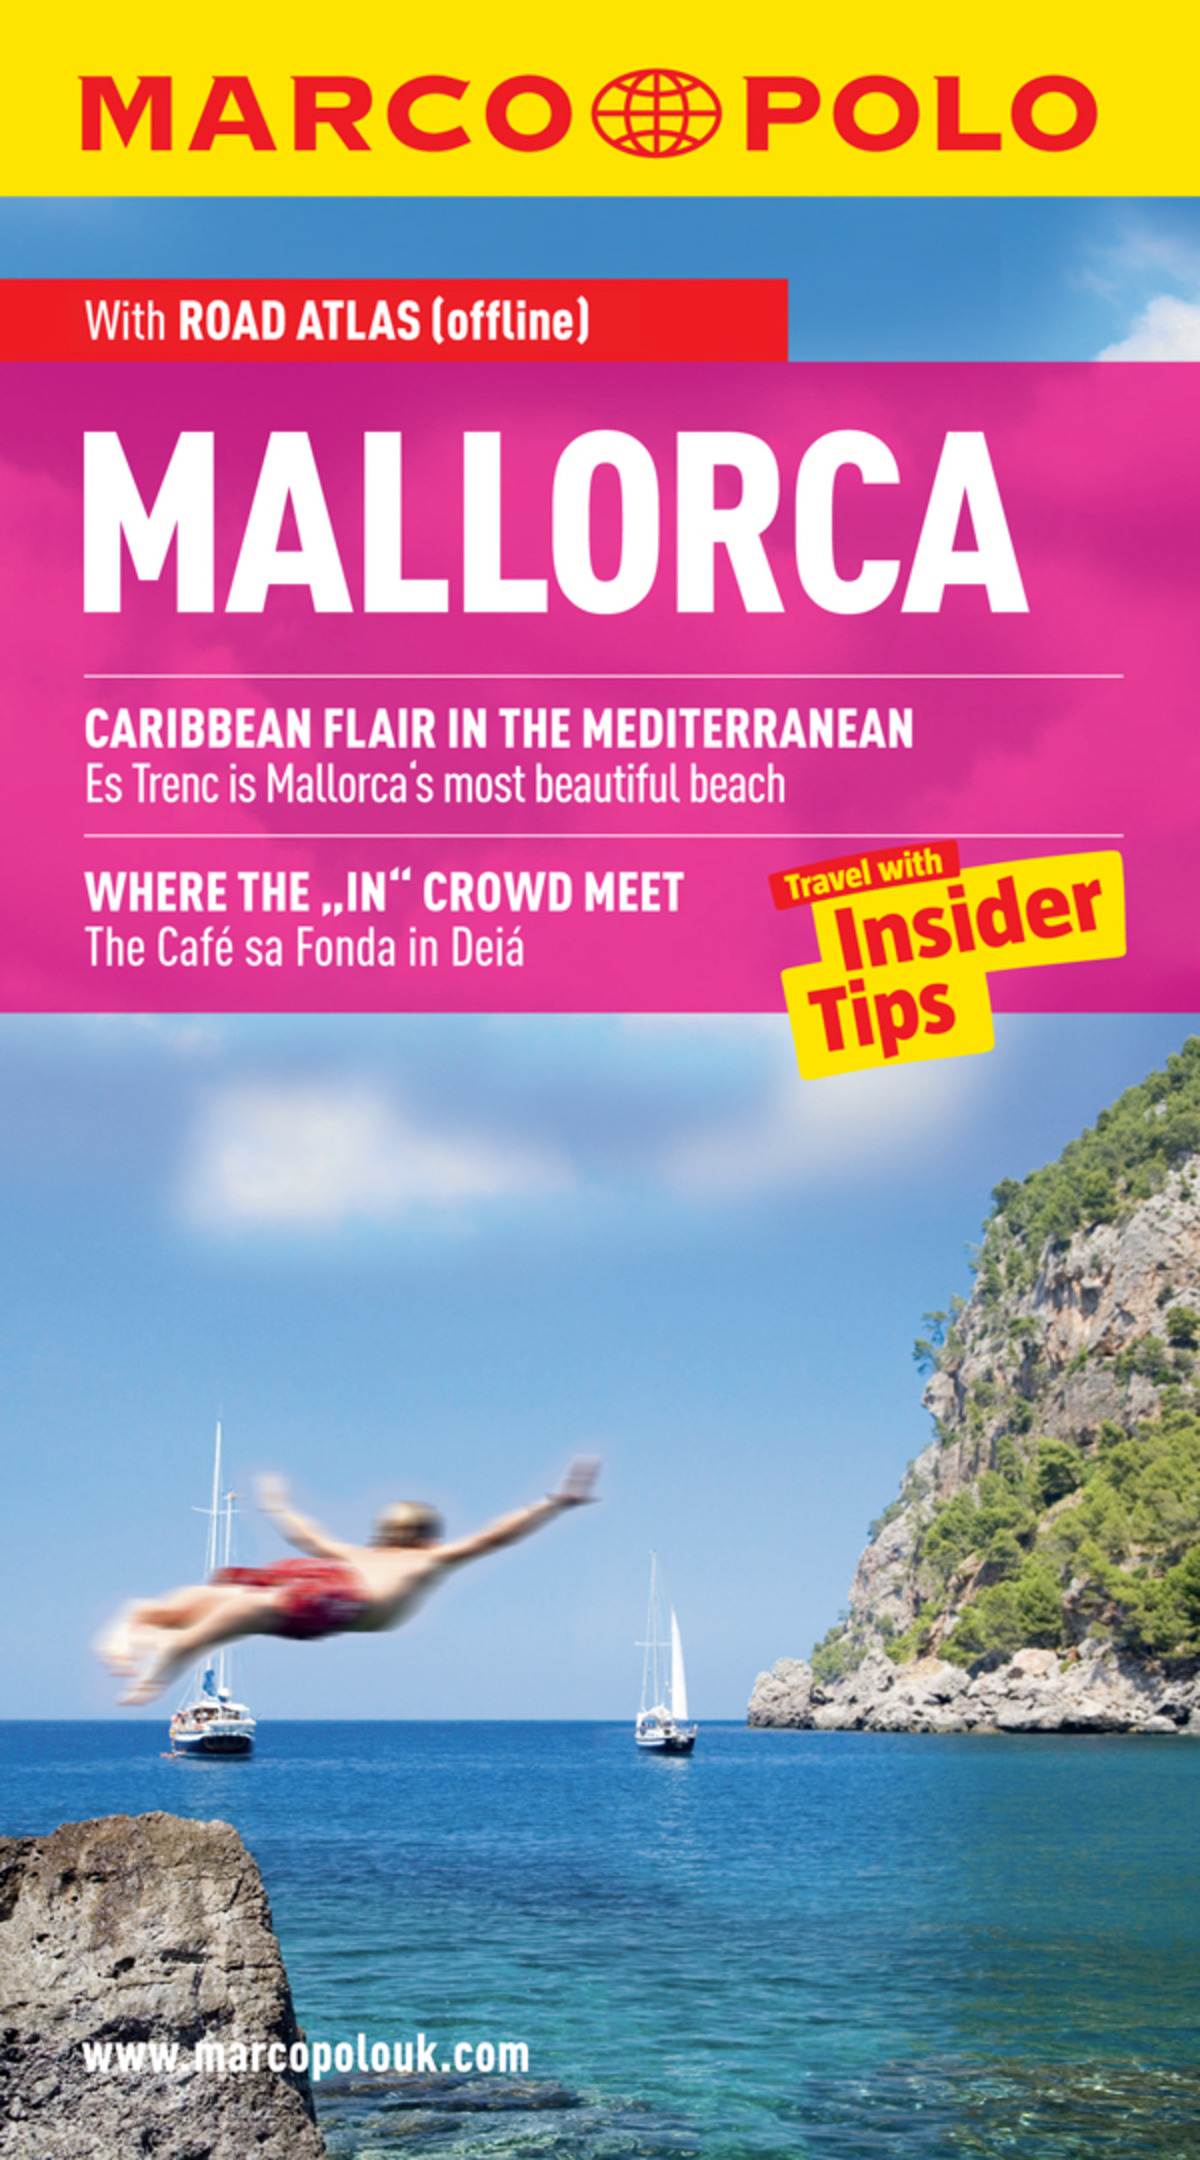 MARCO POLO Travel Guide Mallorca